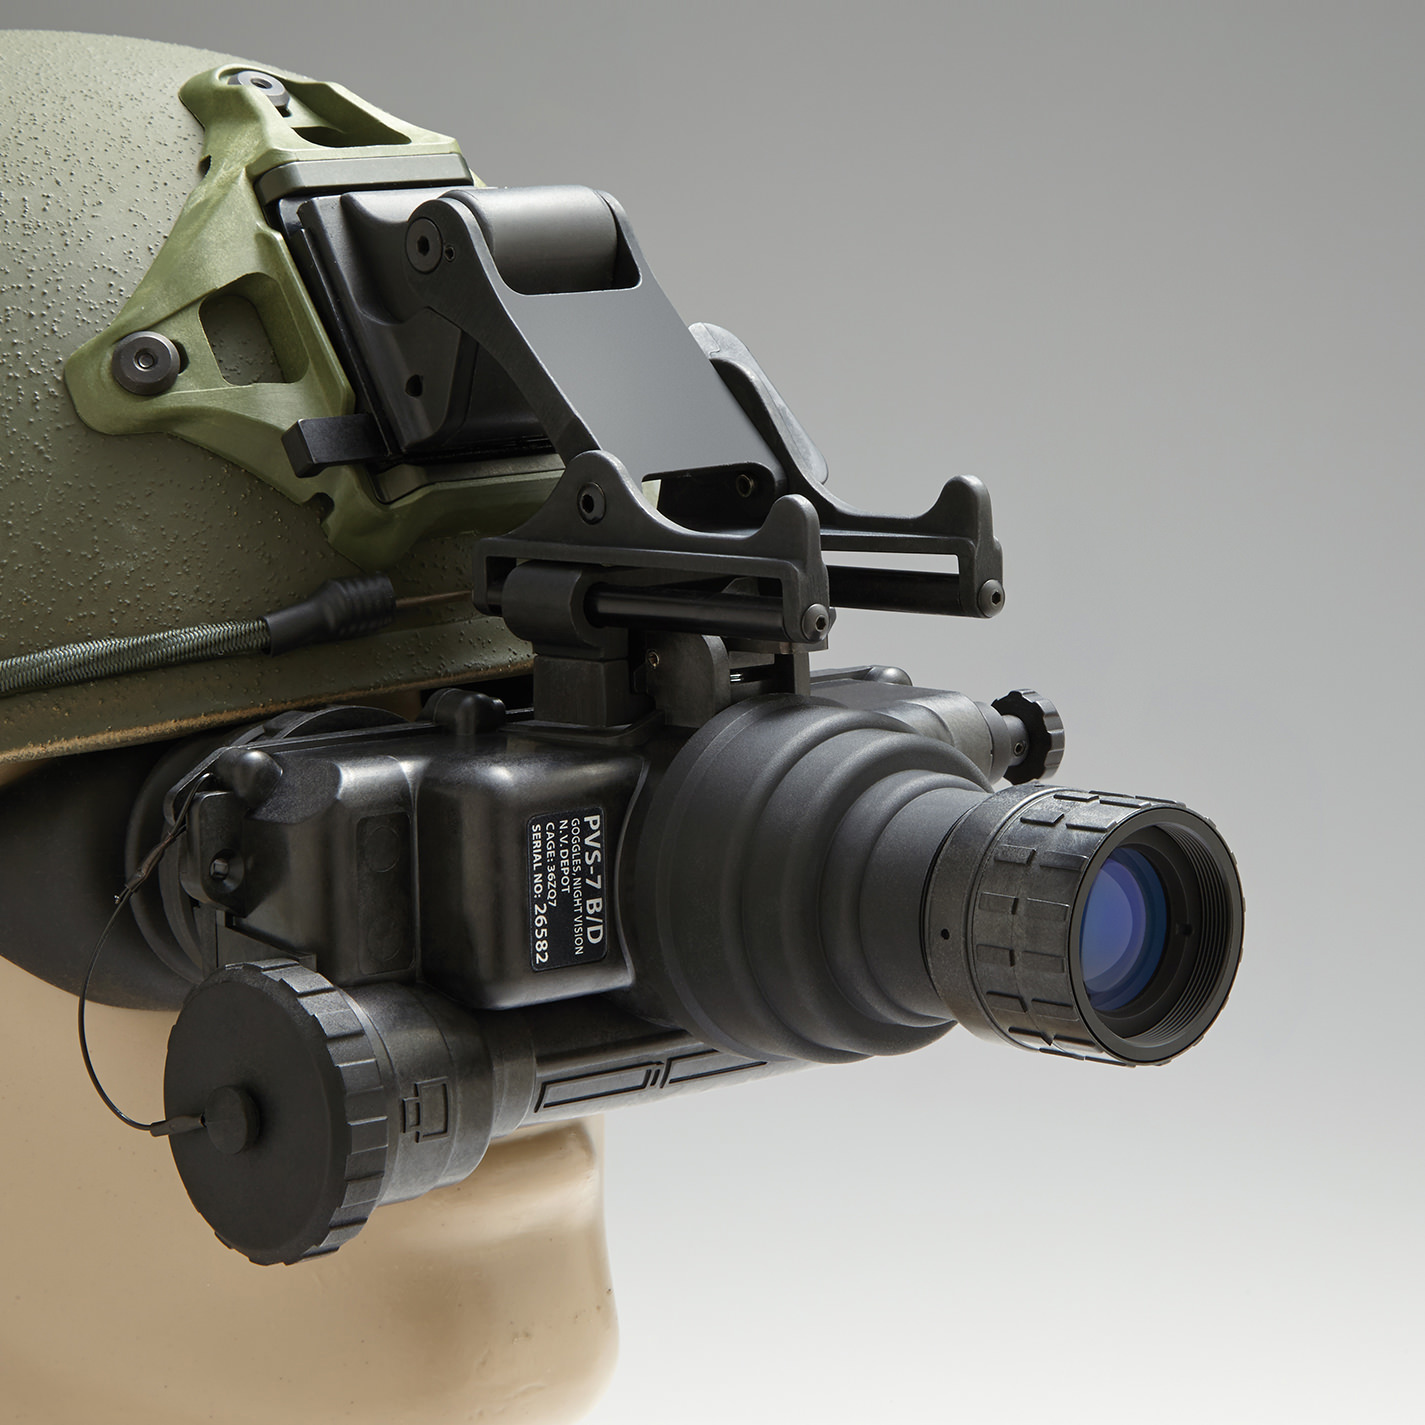 Sfk 7 Night Vision Goggles Special Forces Kit Night